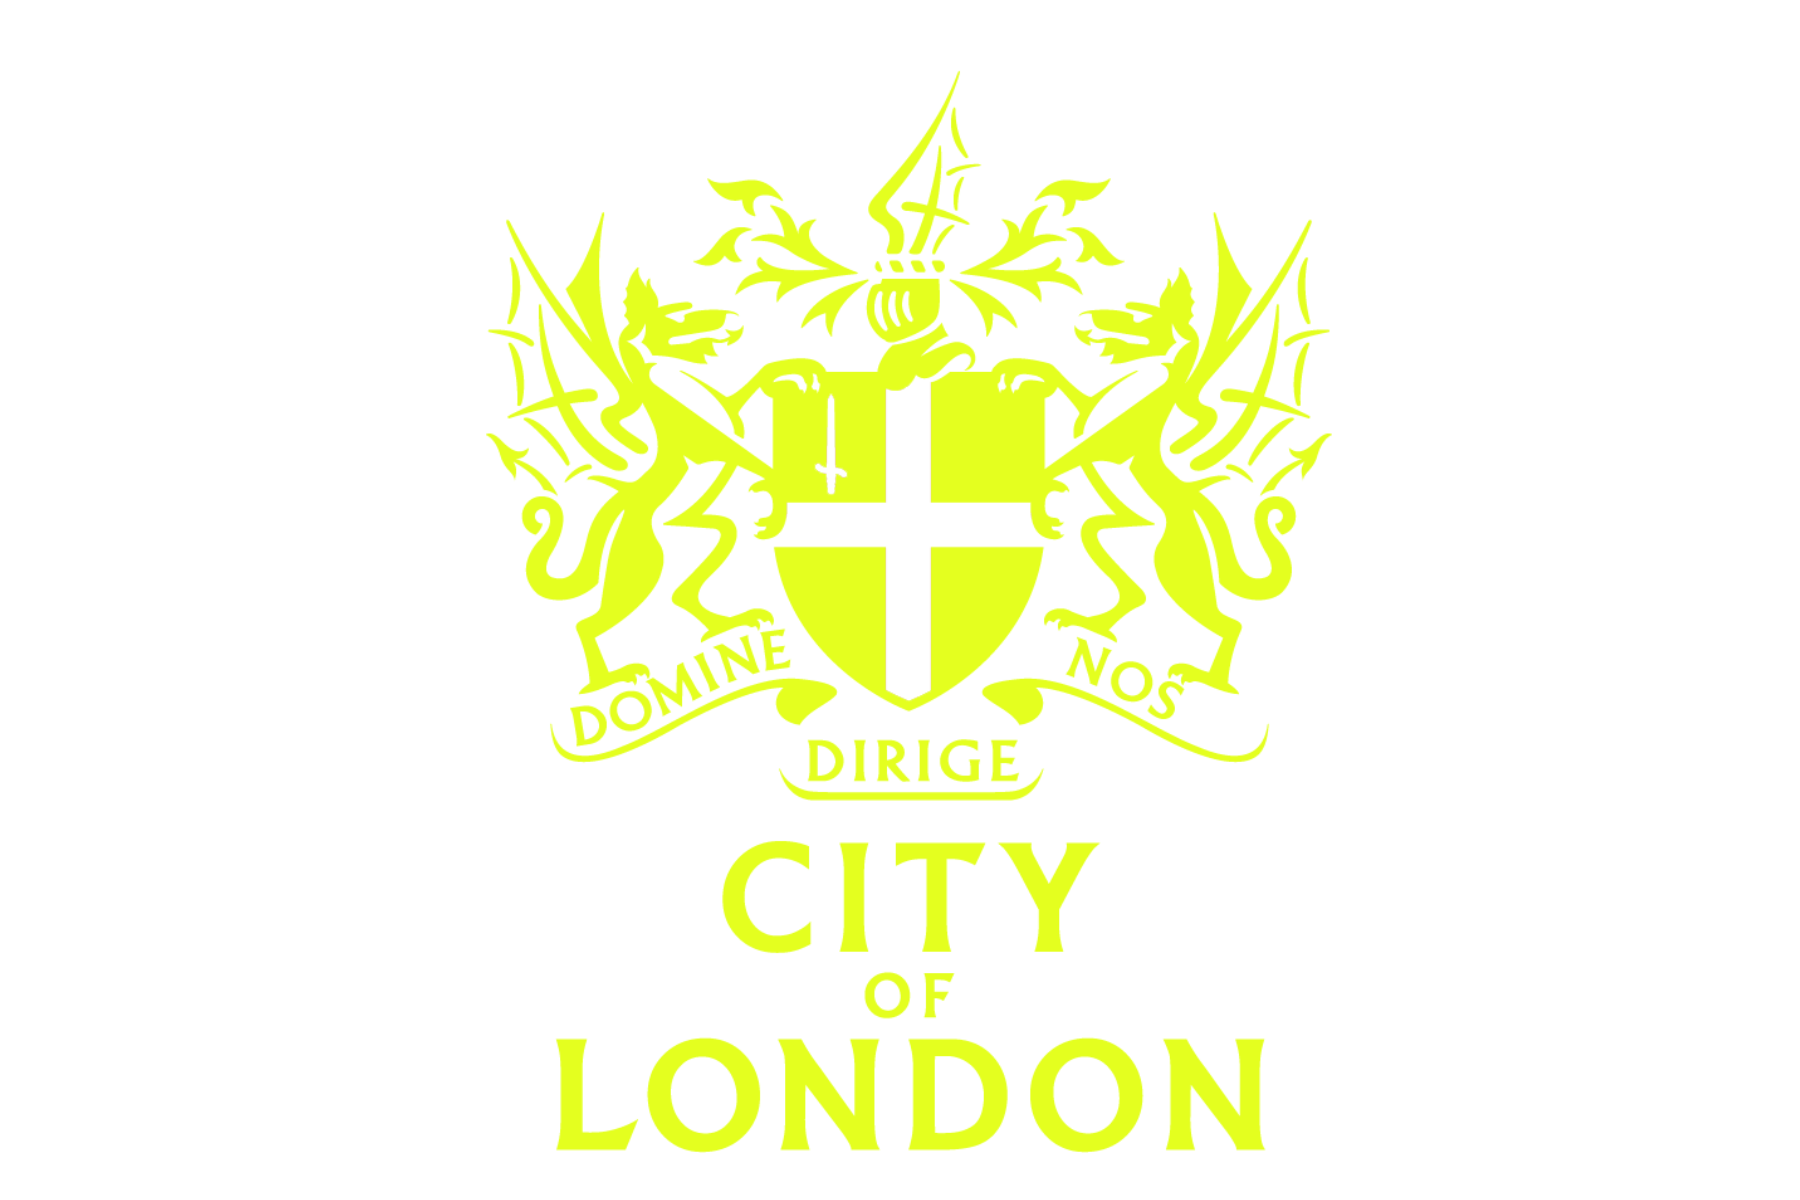 City of London_Yellow.png